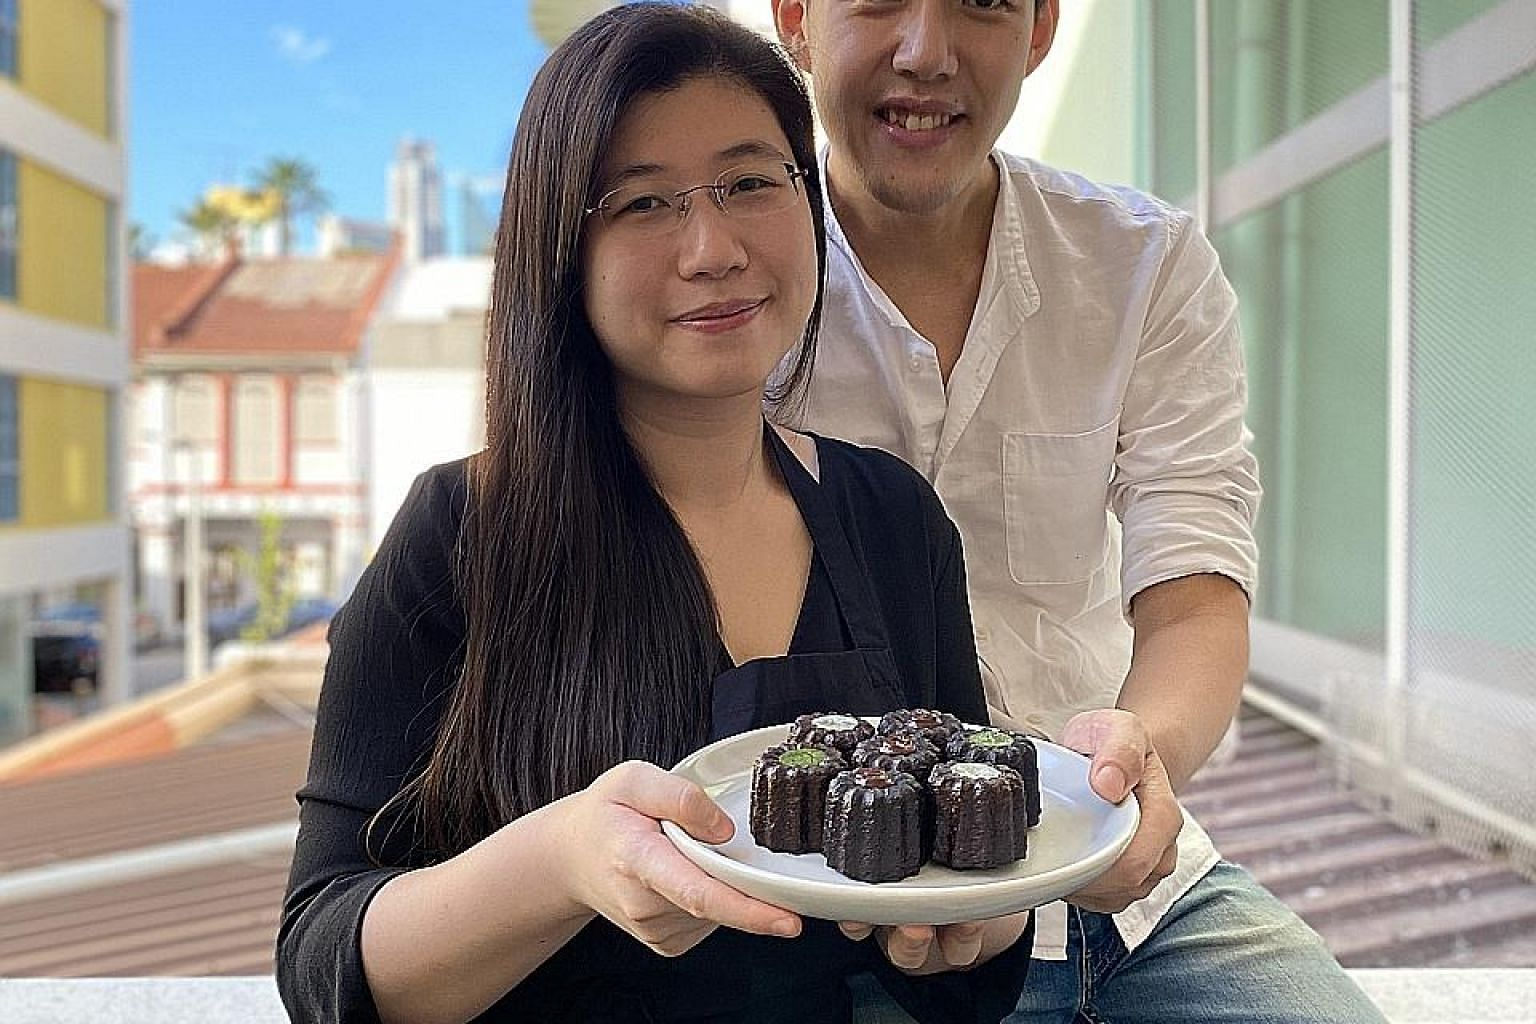 Ms Michelle Tan and Mr Cheong Qing Da of Levelled offer tasting boxes of caneles and brownies and have a wait list of more than 1,000 people.